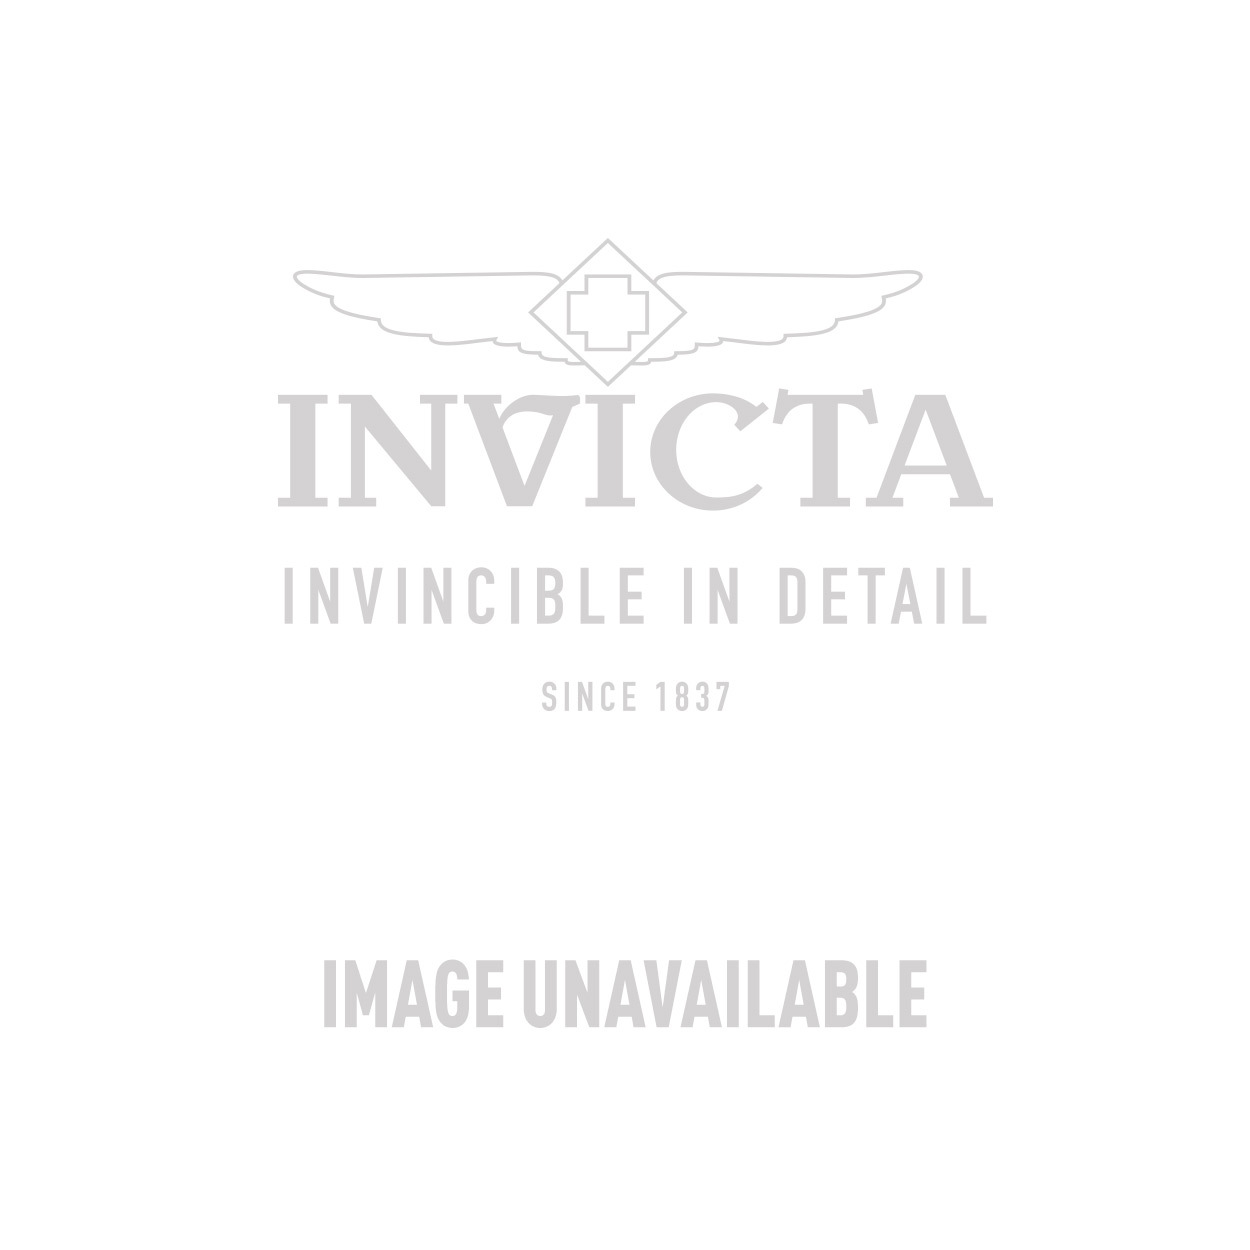 Invicta Excursion Swiss Made Quartz Watch - Black case with Black tone Stainless Steel band - Model 6250